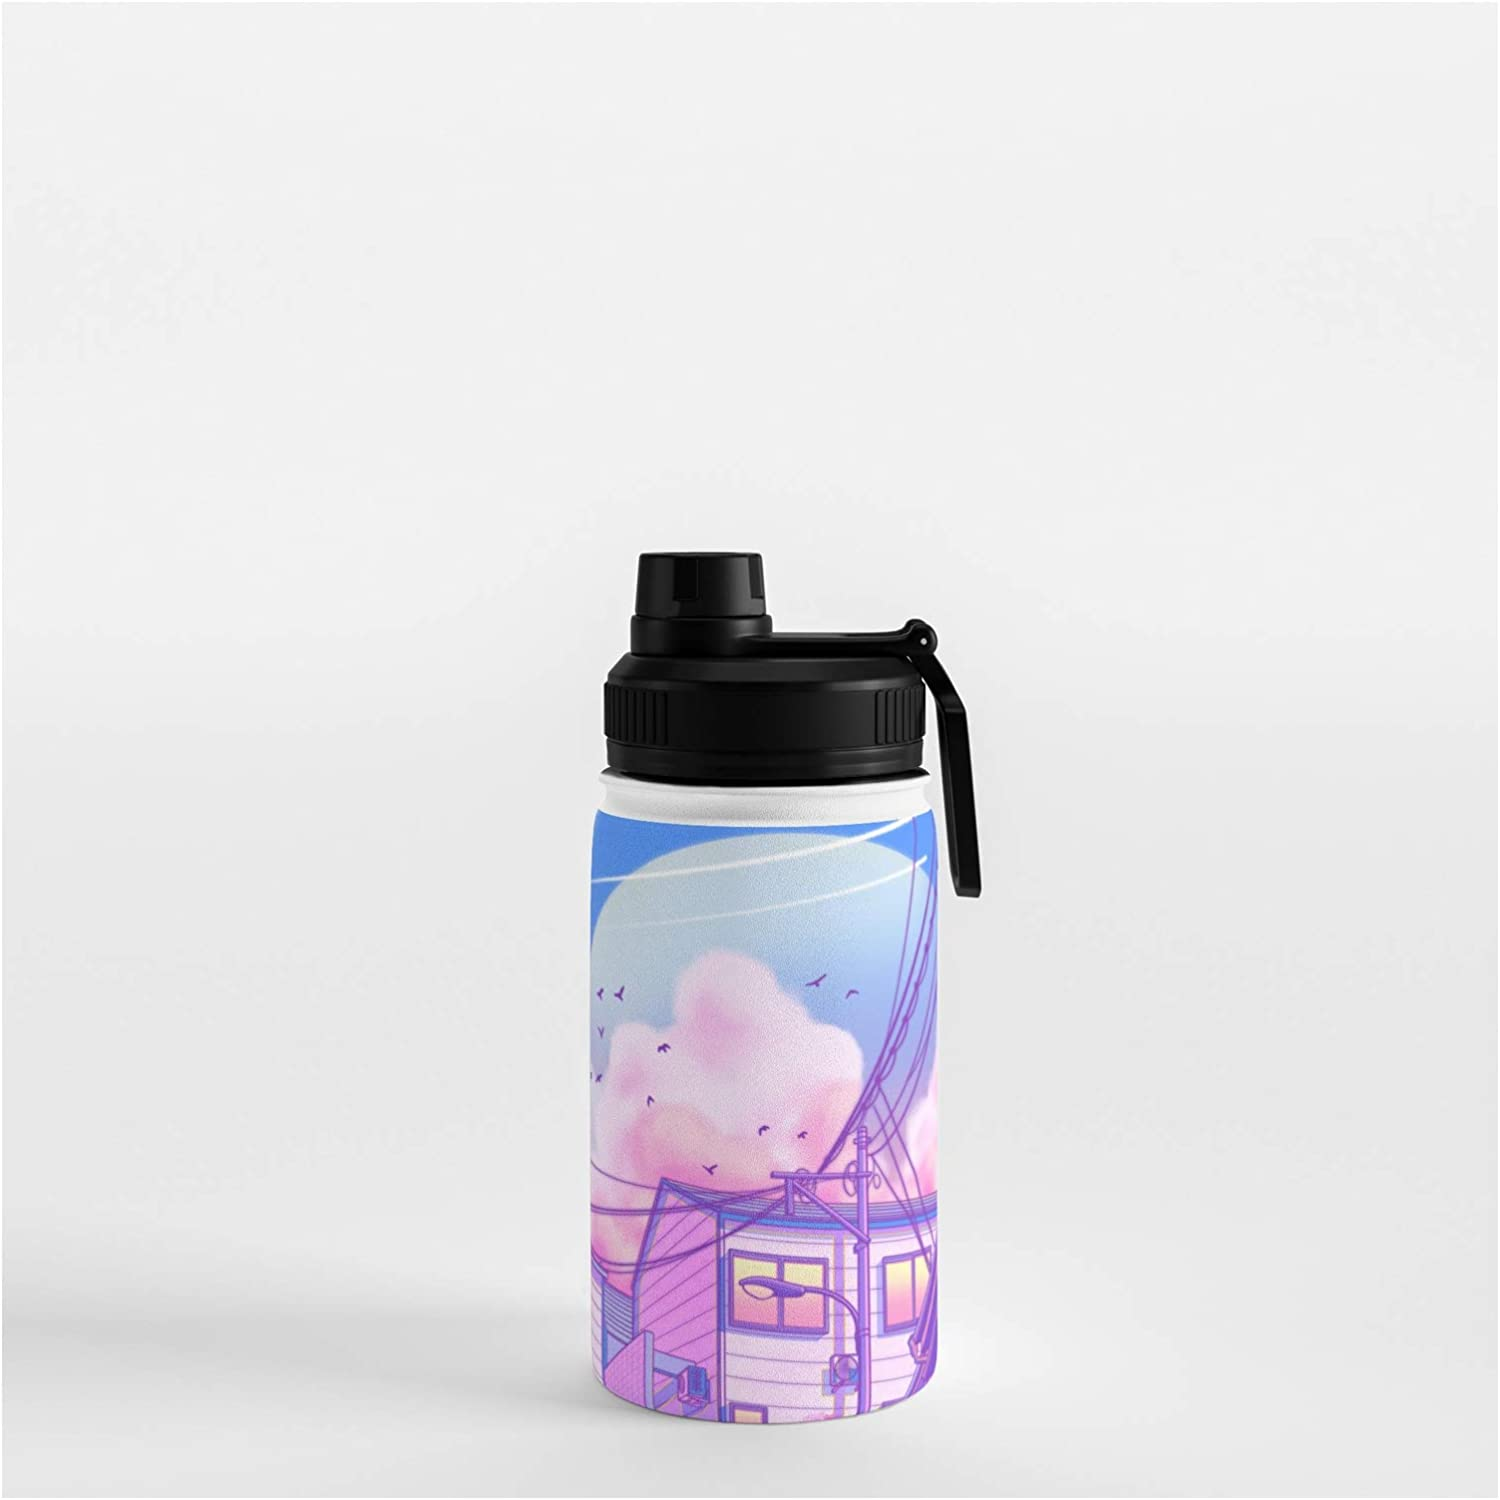 Society6 City Pop Tokyo 25% OFF by Surudenise on oz 35 - Bottle Water New color 12